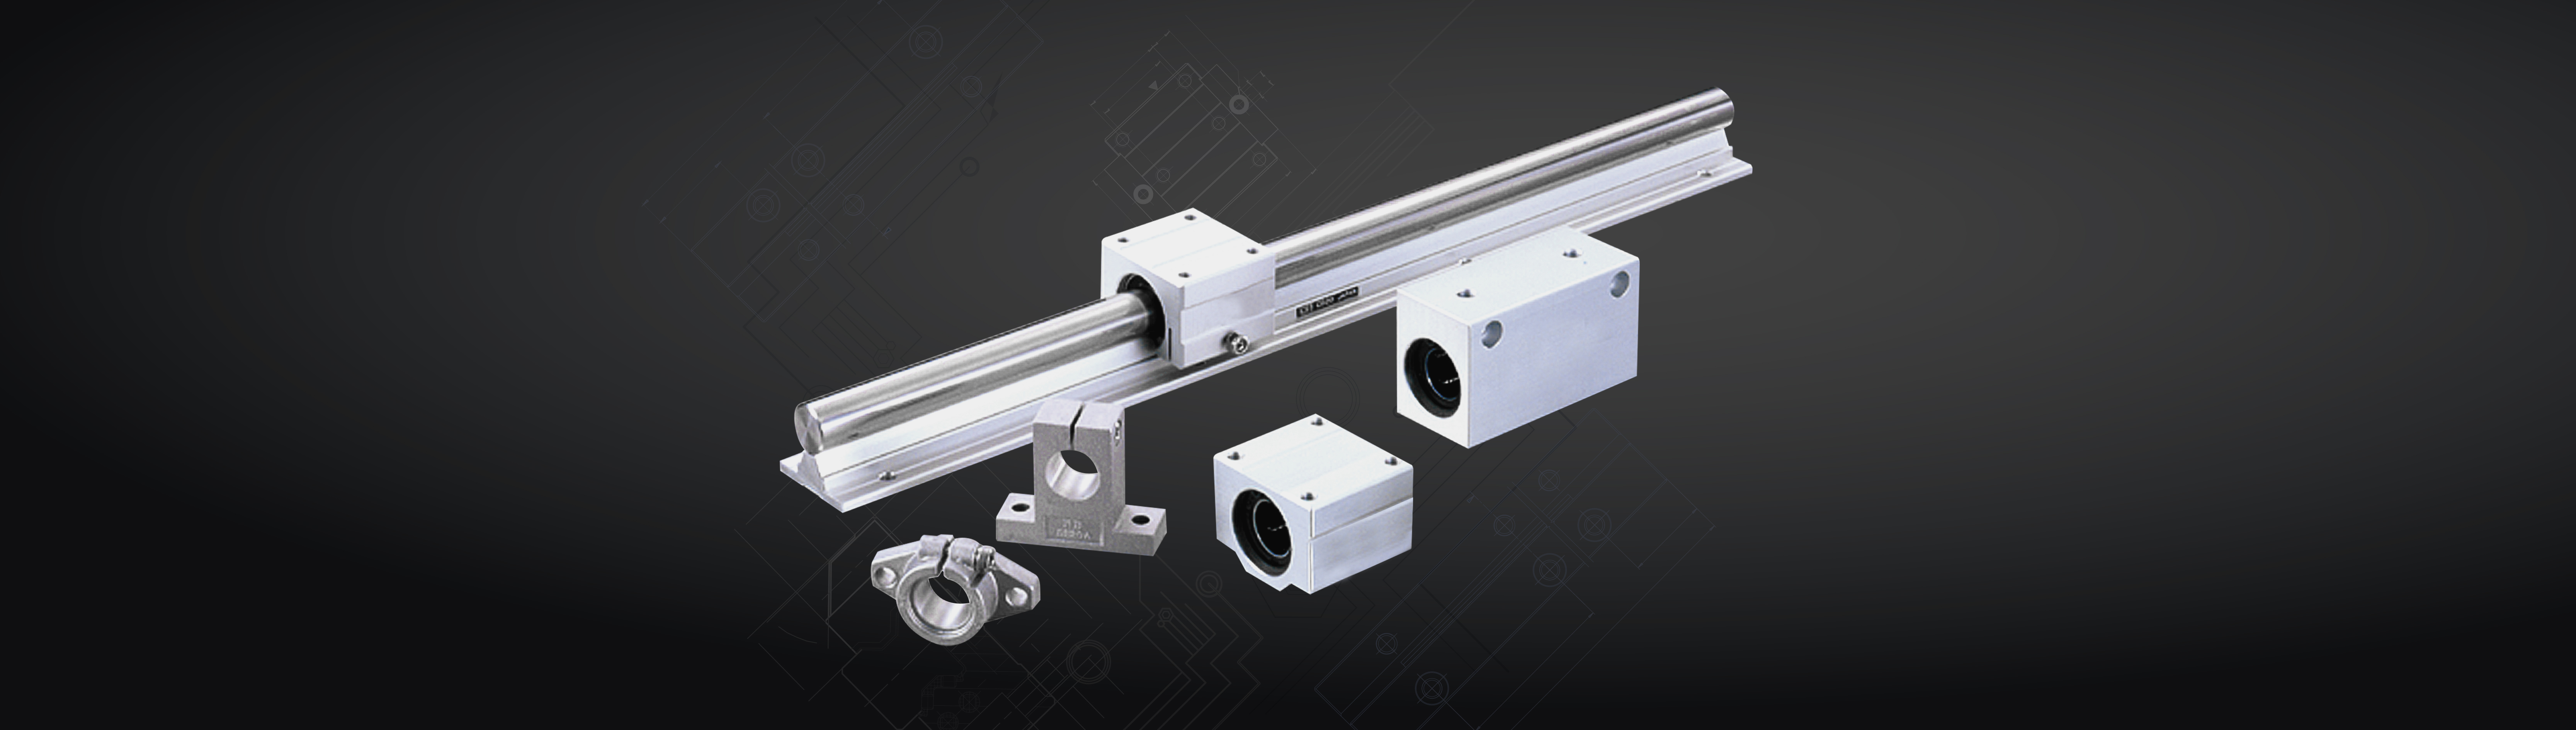 Guide shafts and linear bearings